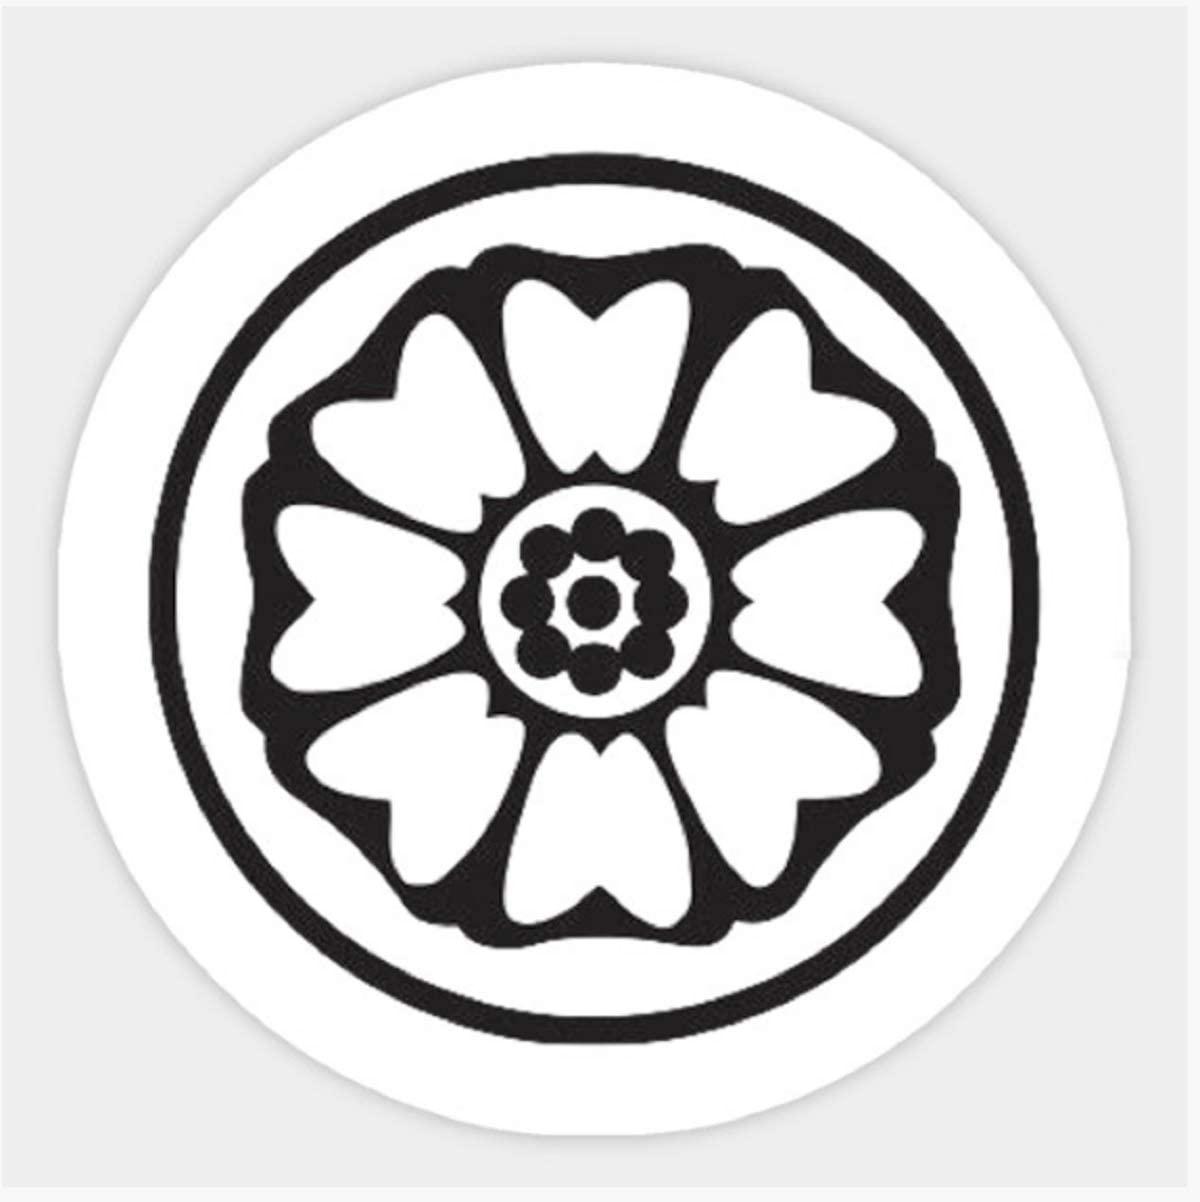 Order of The White Lotus - Avatar: The Last Airbender Sticker for Laptops MacBook Skateboards Cars Bumpers Bikes Bicycles Bedroom